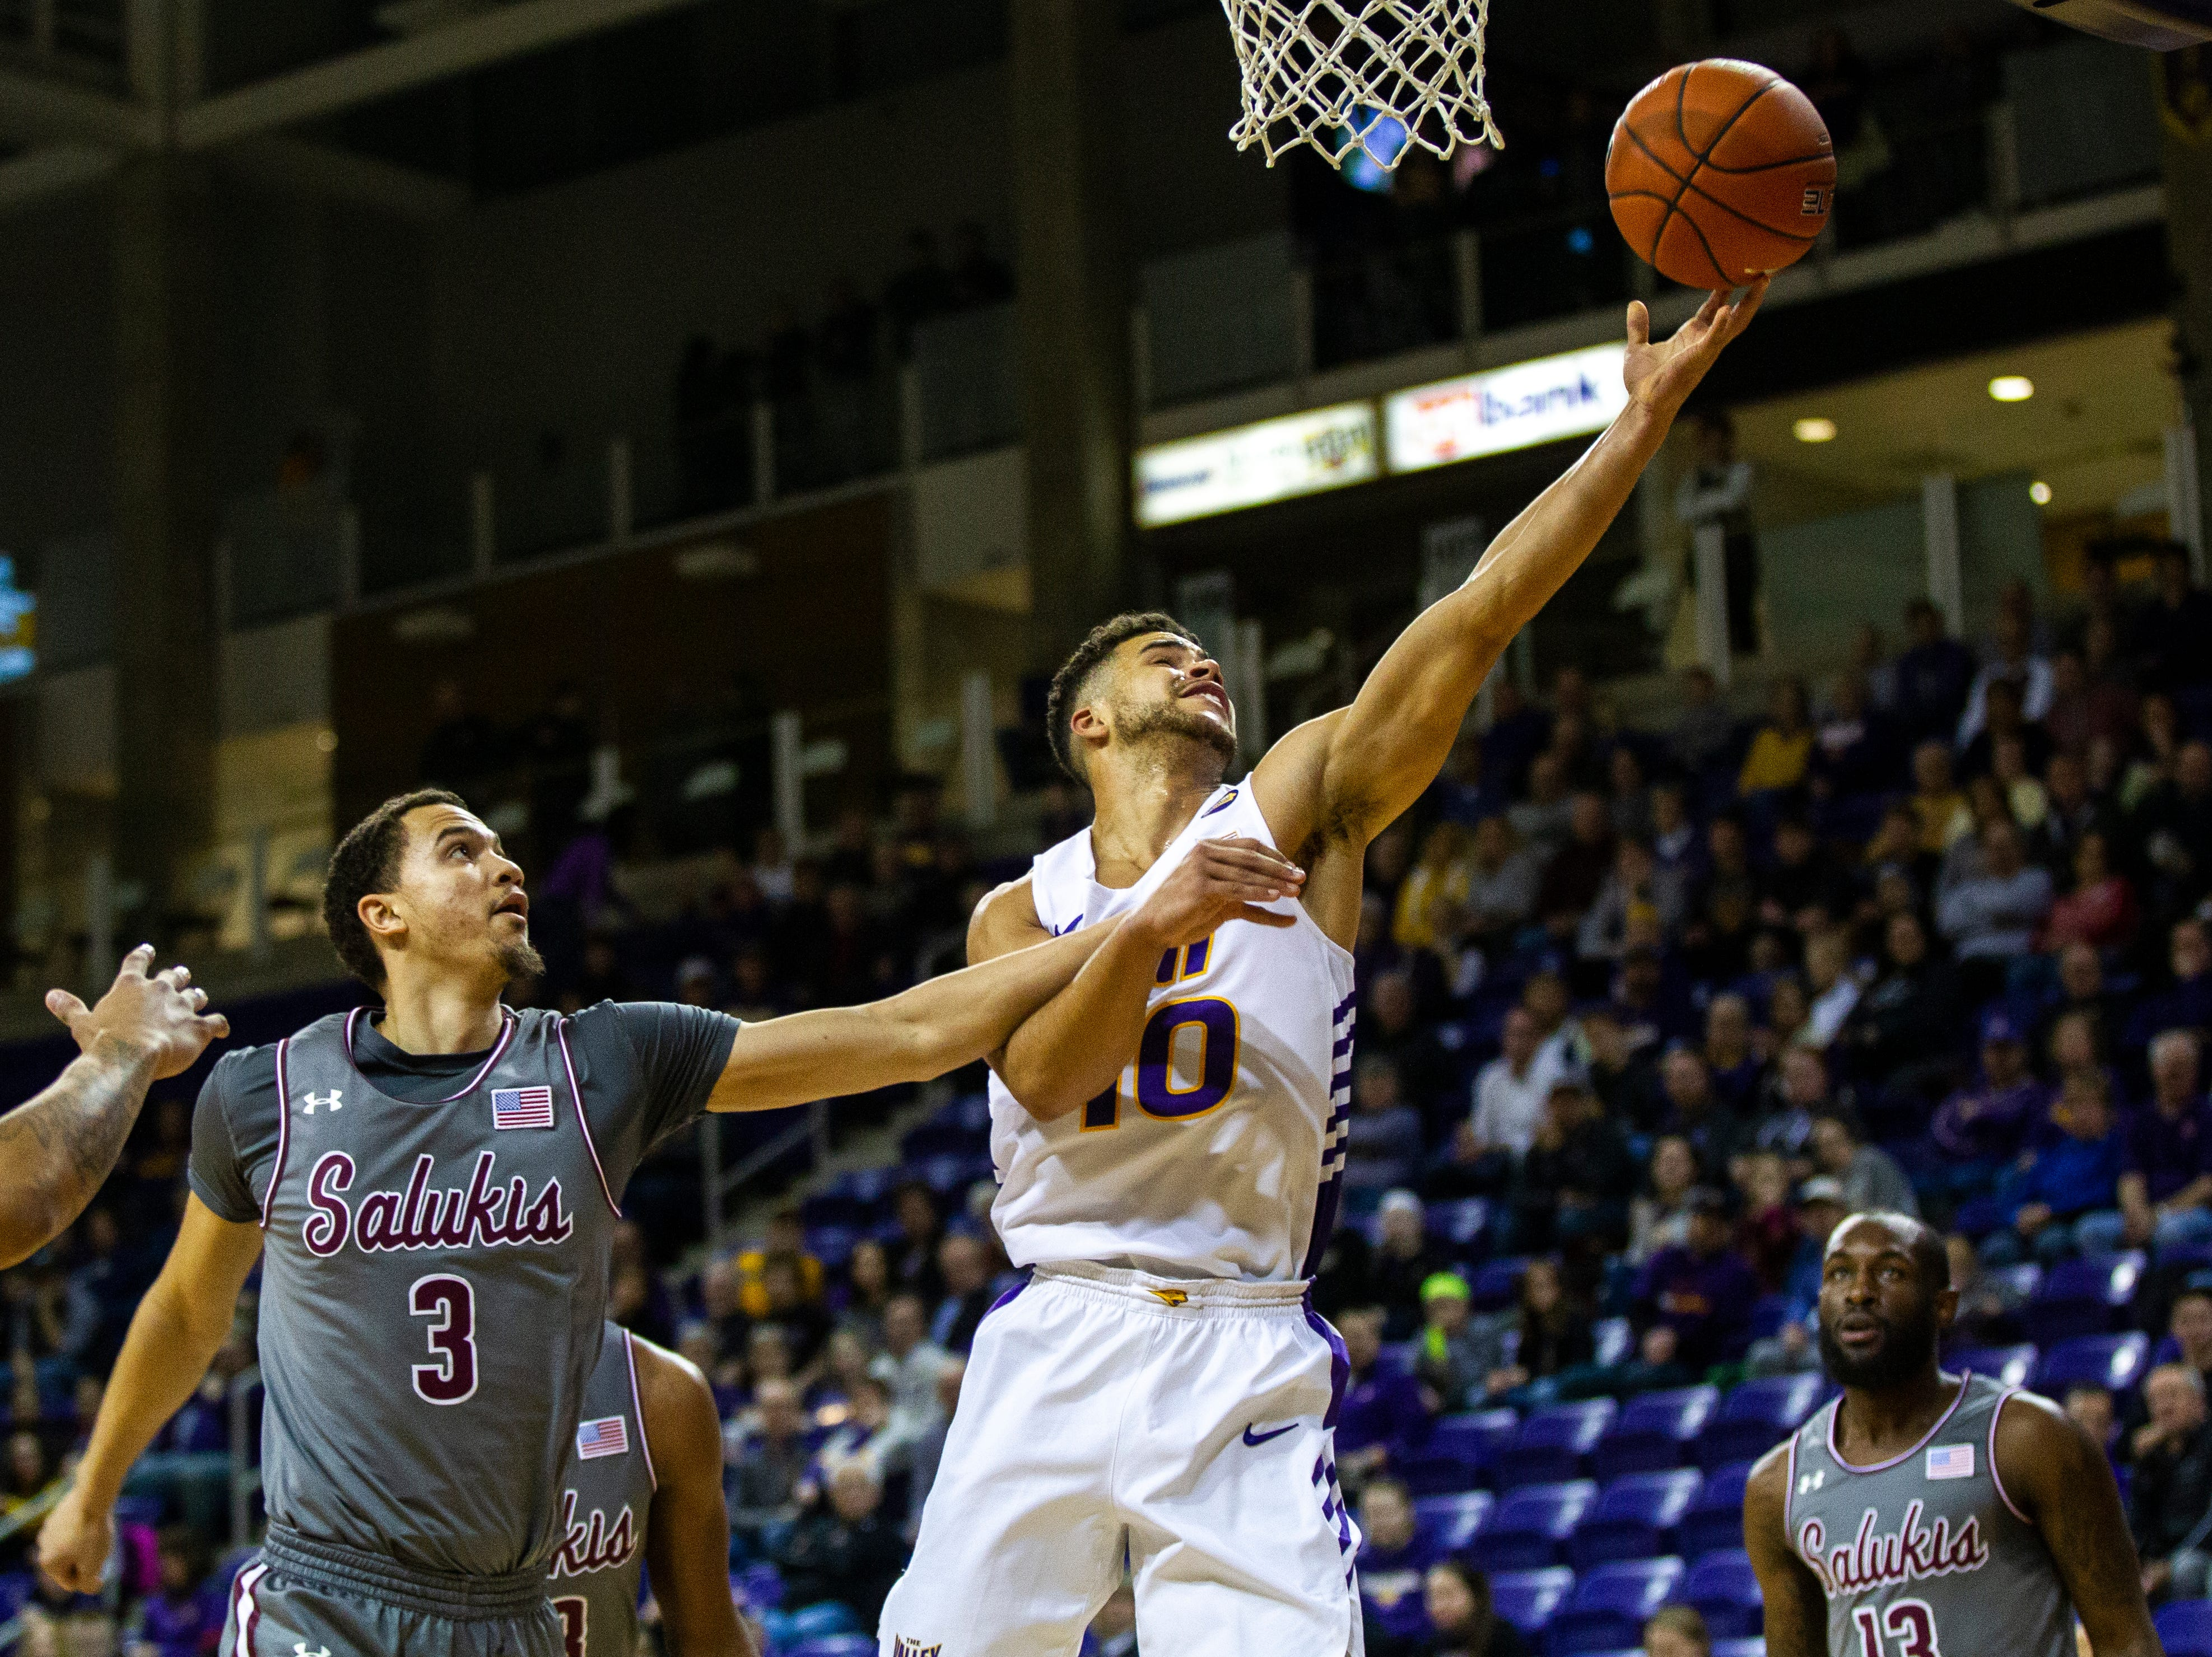 Northern Iowa guard Miles Wentzien makes a layup past Southern Illinois guard Marcus Bartley (3) during a NCAA Missouri Valley Conference men's basketball game on Saturday, Jan. 5, 2019, at the McLeod Center in Cedar Falls, Iowa.